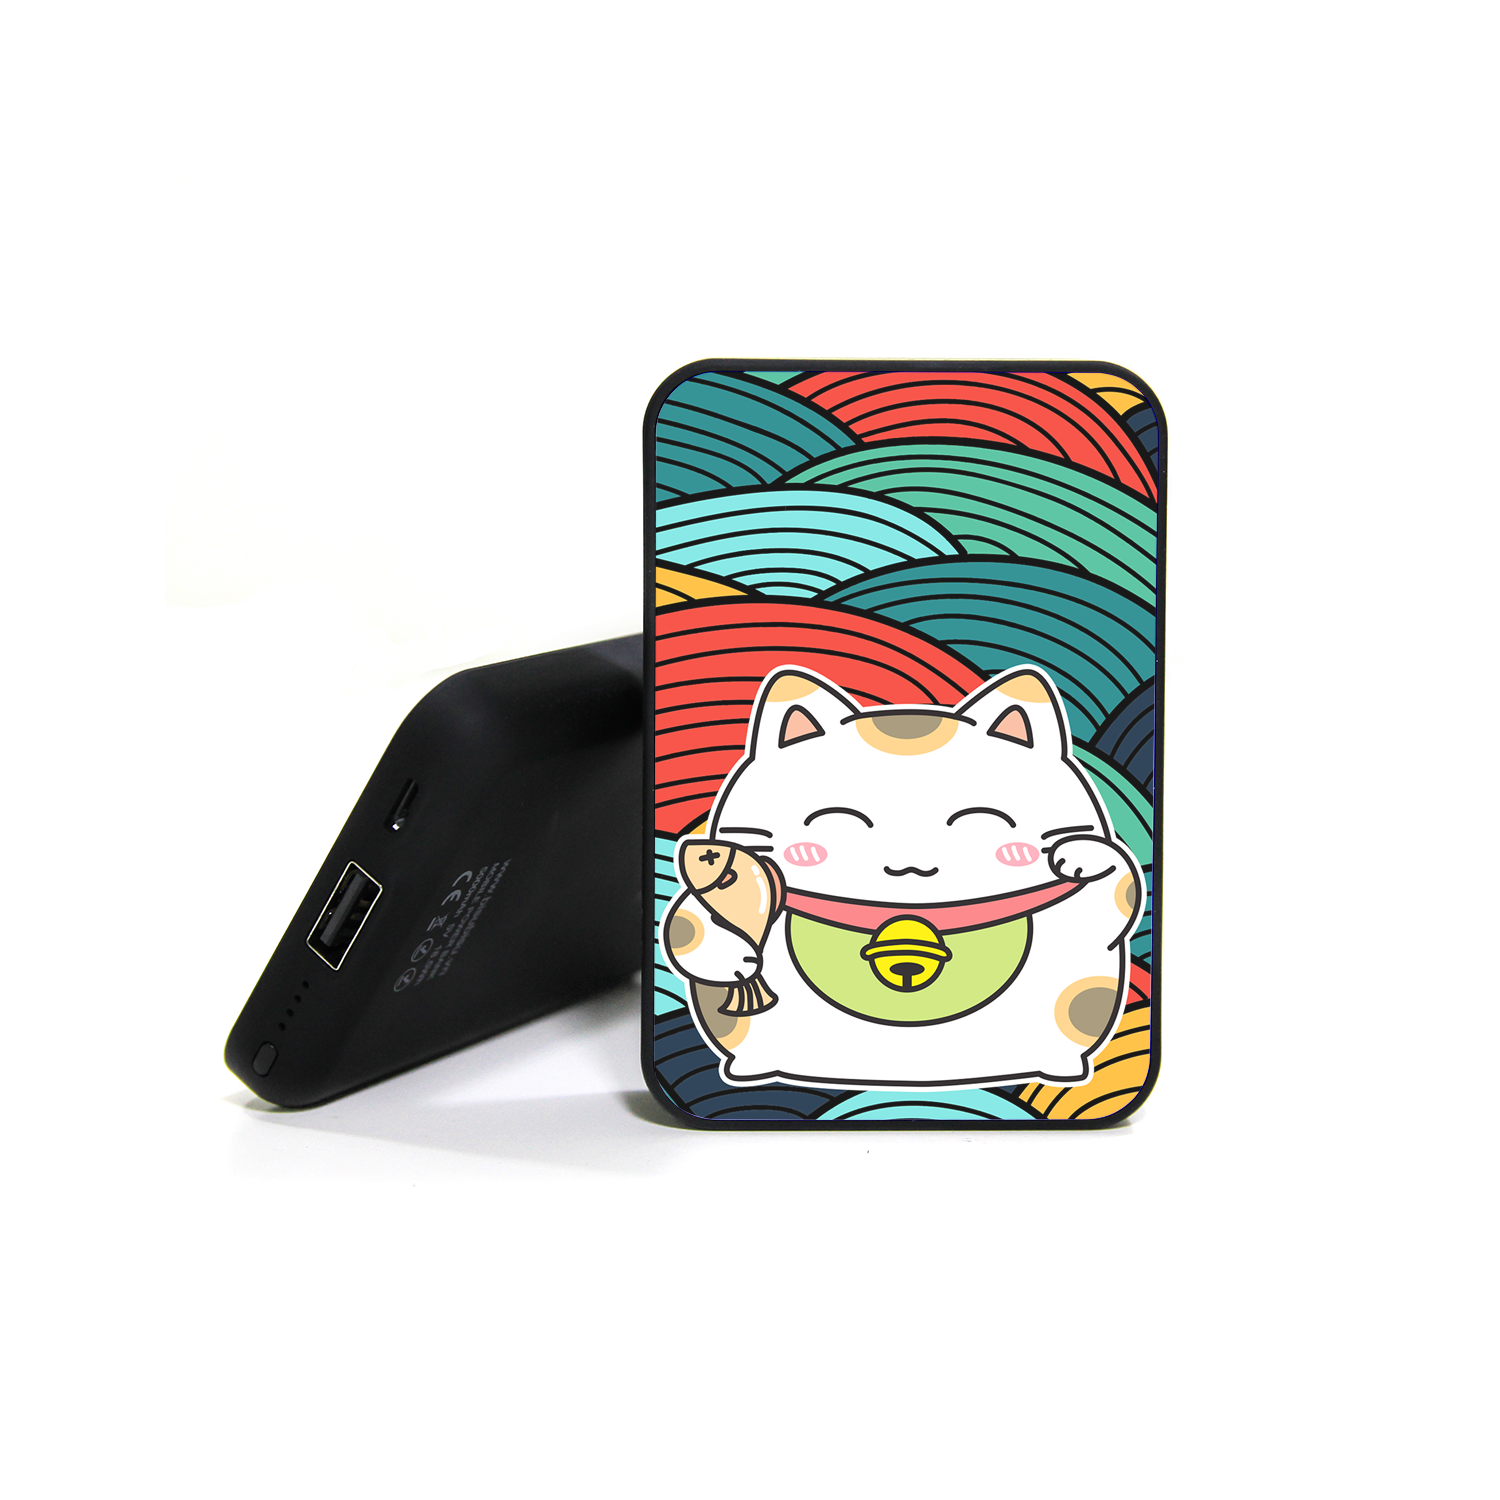 BISU BISU - PIN 10000MAH NEKO CAT